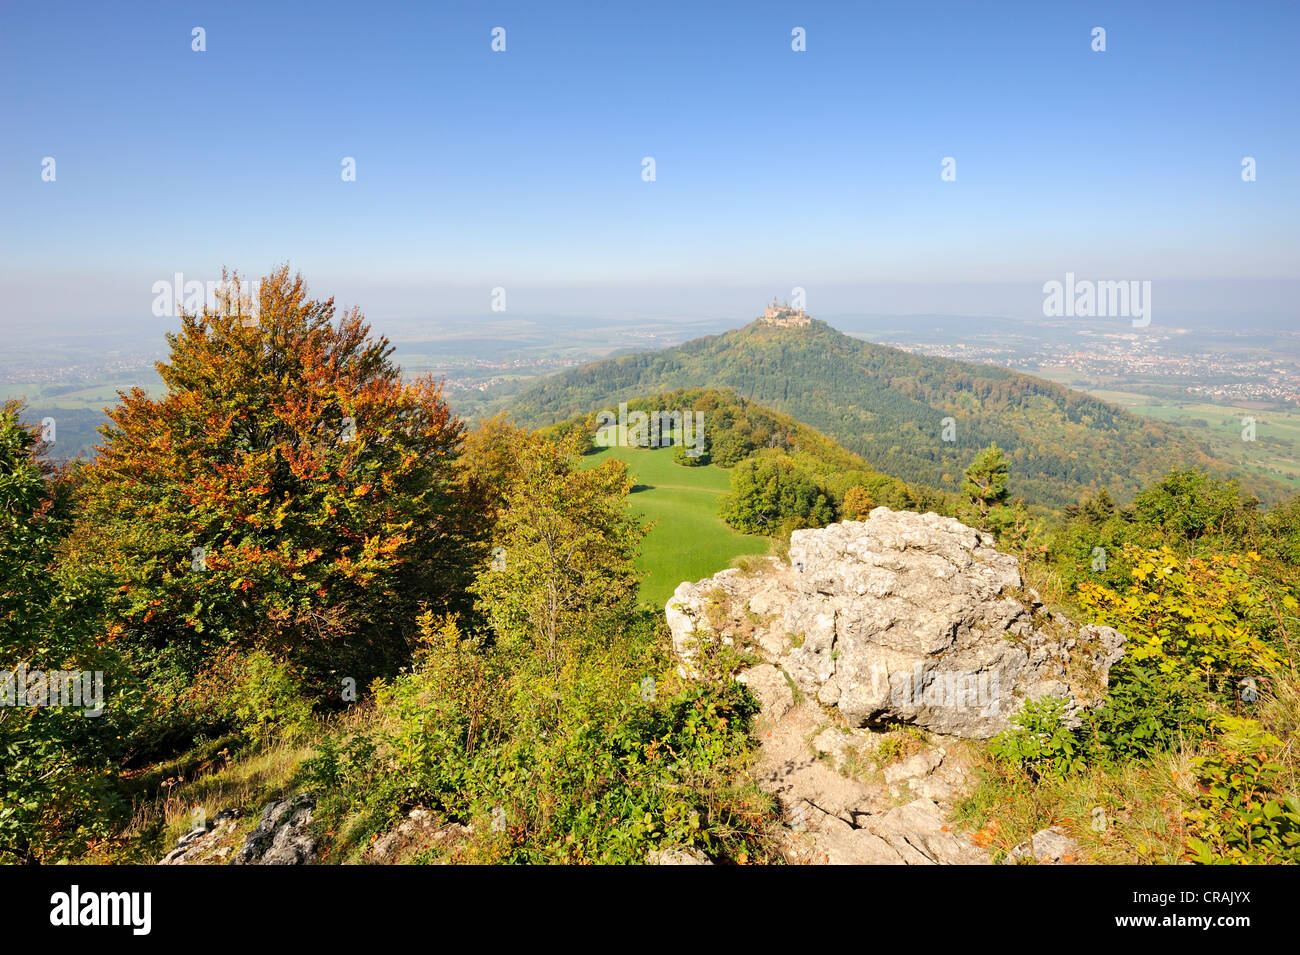 View from the popular tourist destination, lookout point towards Schaufelsen Zellerhorn zur Burg Hohenzollern Castle - Stock Image